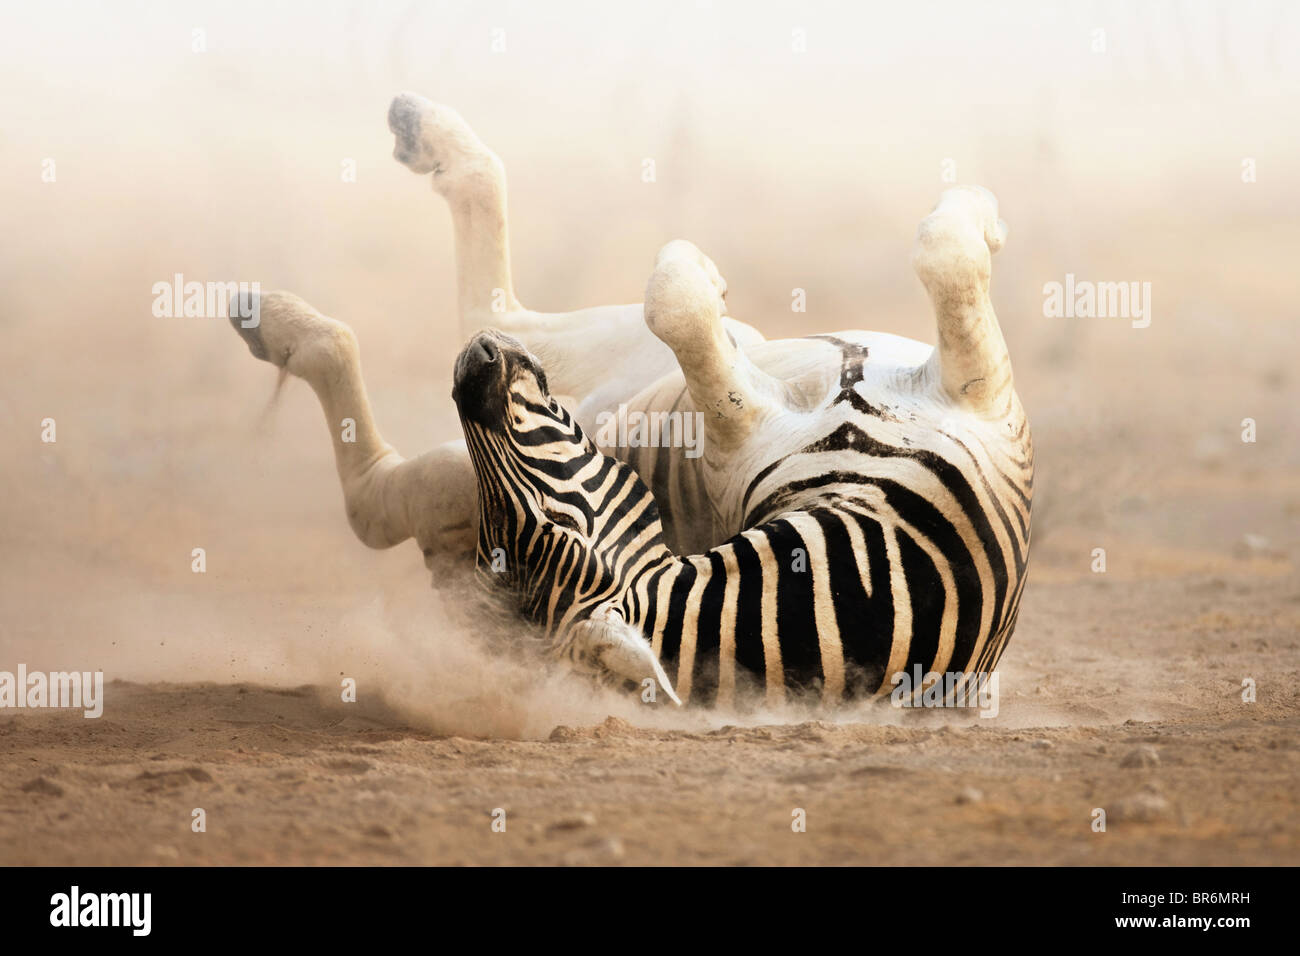 Zebra rolling on dusty sand in the early morning ; Etosha - Stock Image